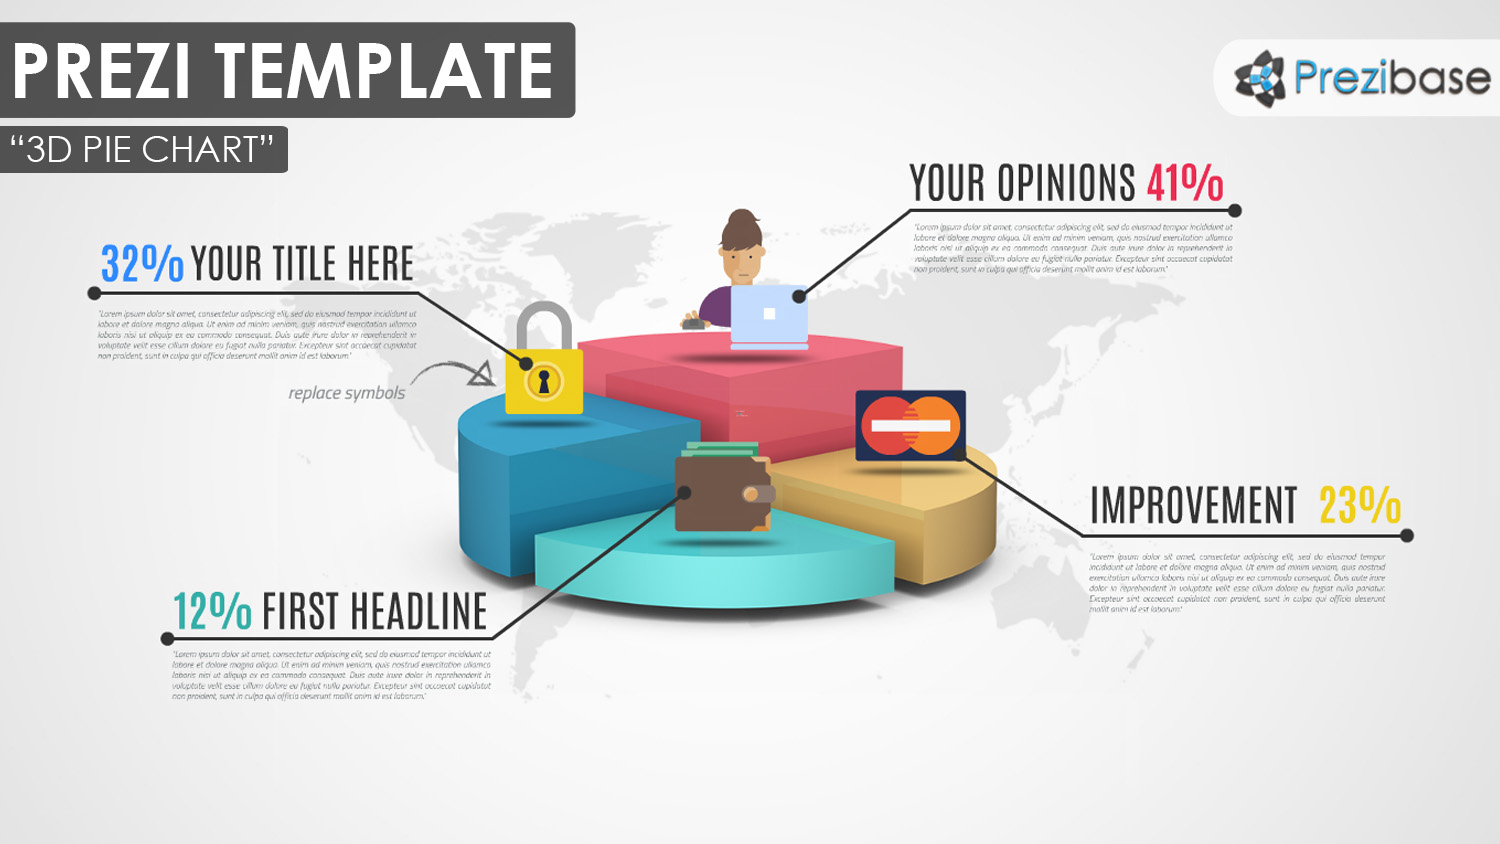 Business prezi templates prezibase 3d pie chart prezi template friedricerecipe Images